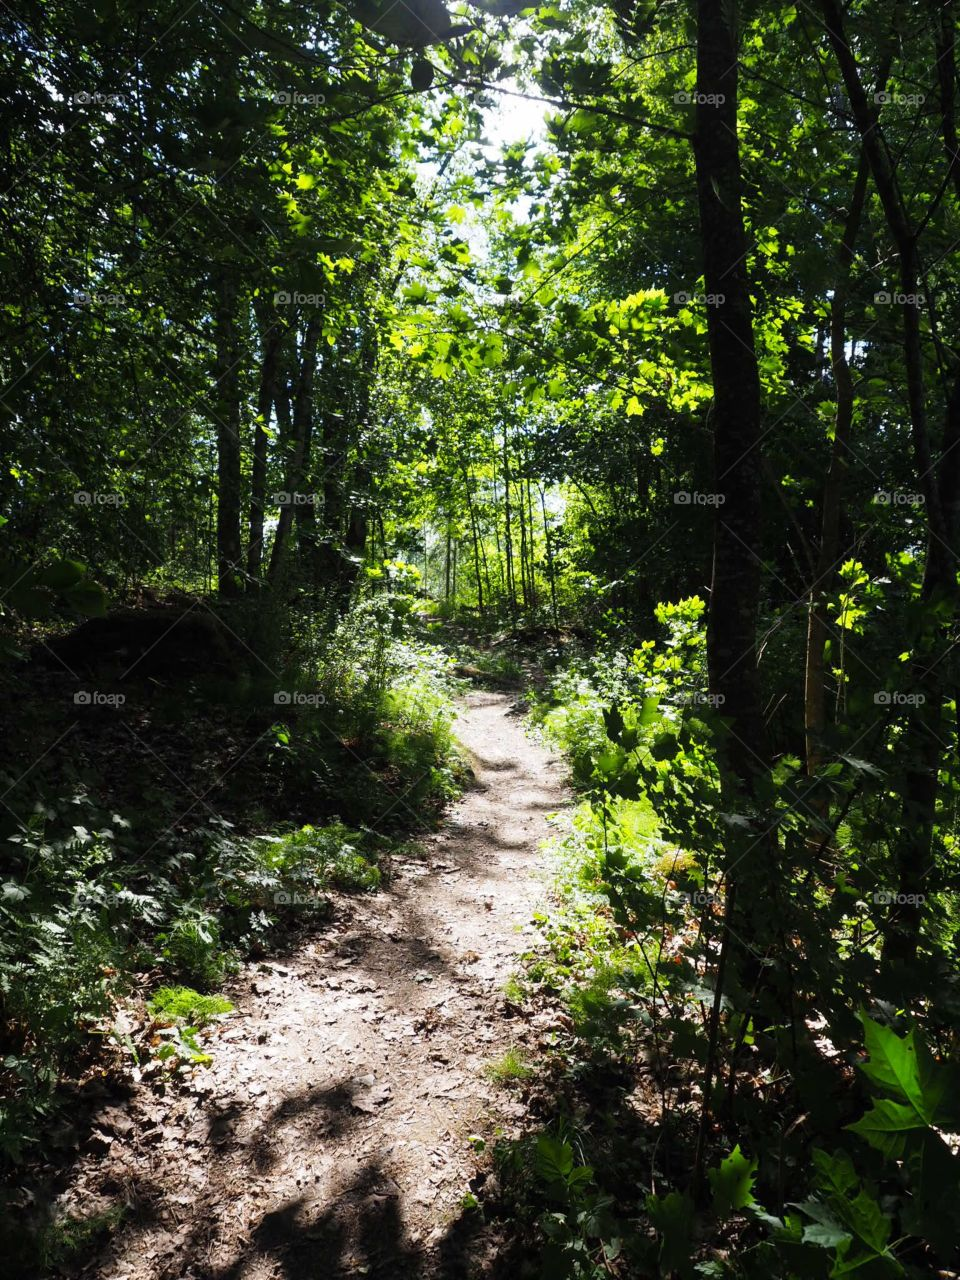 Forest path surrounded by green branches.